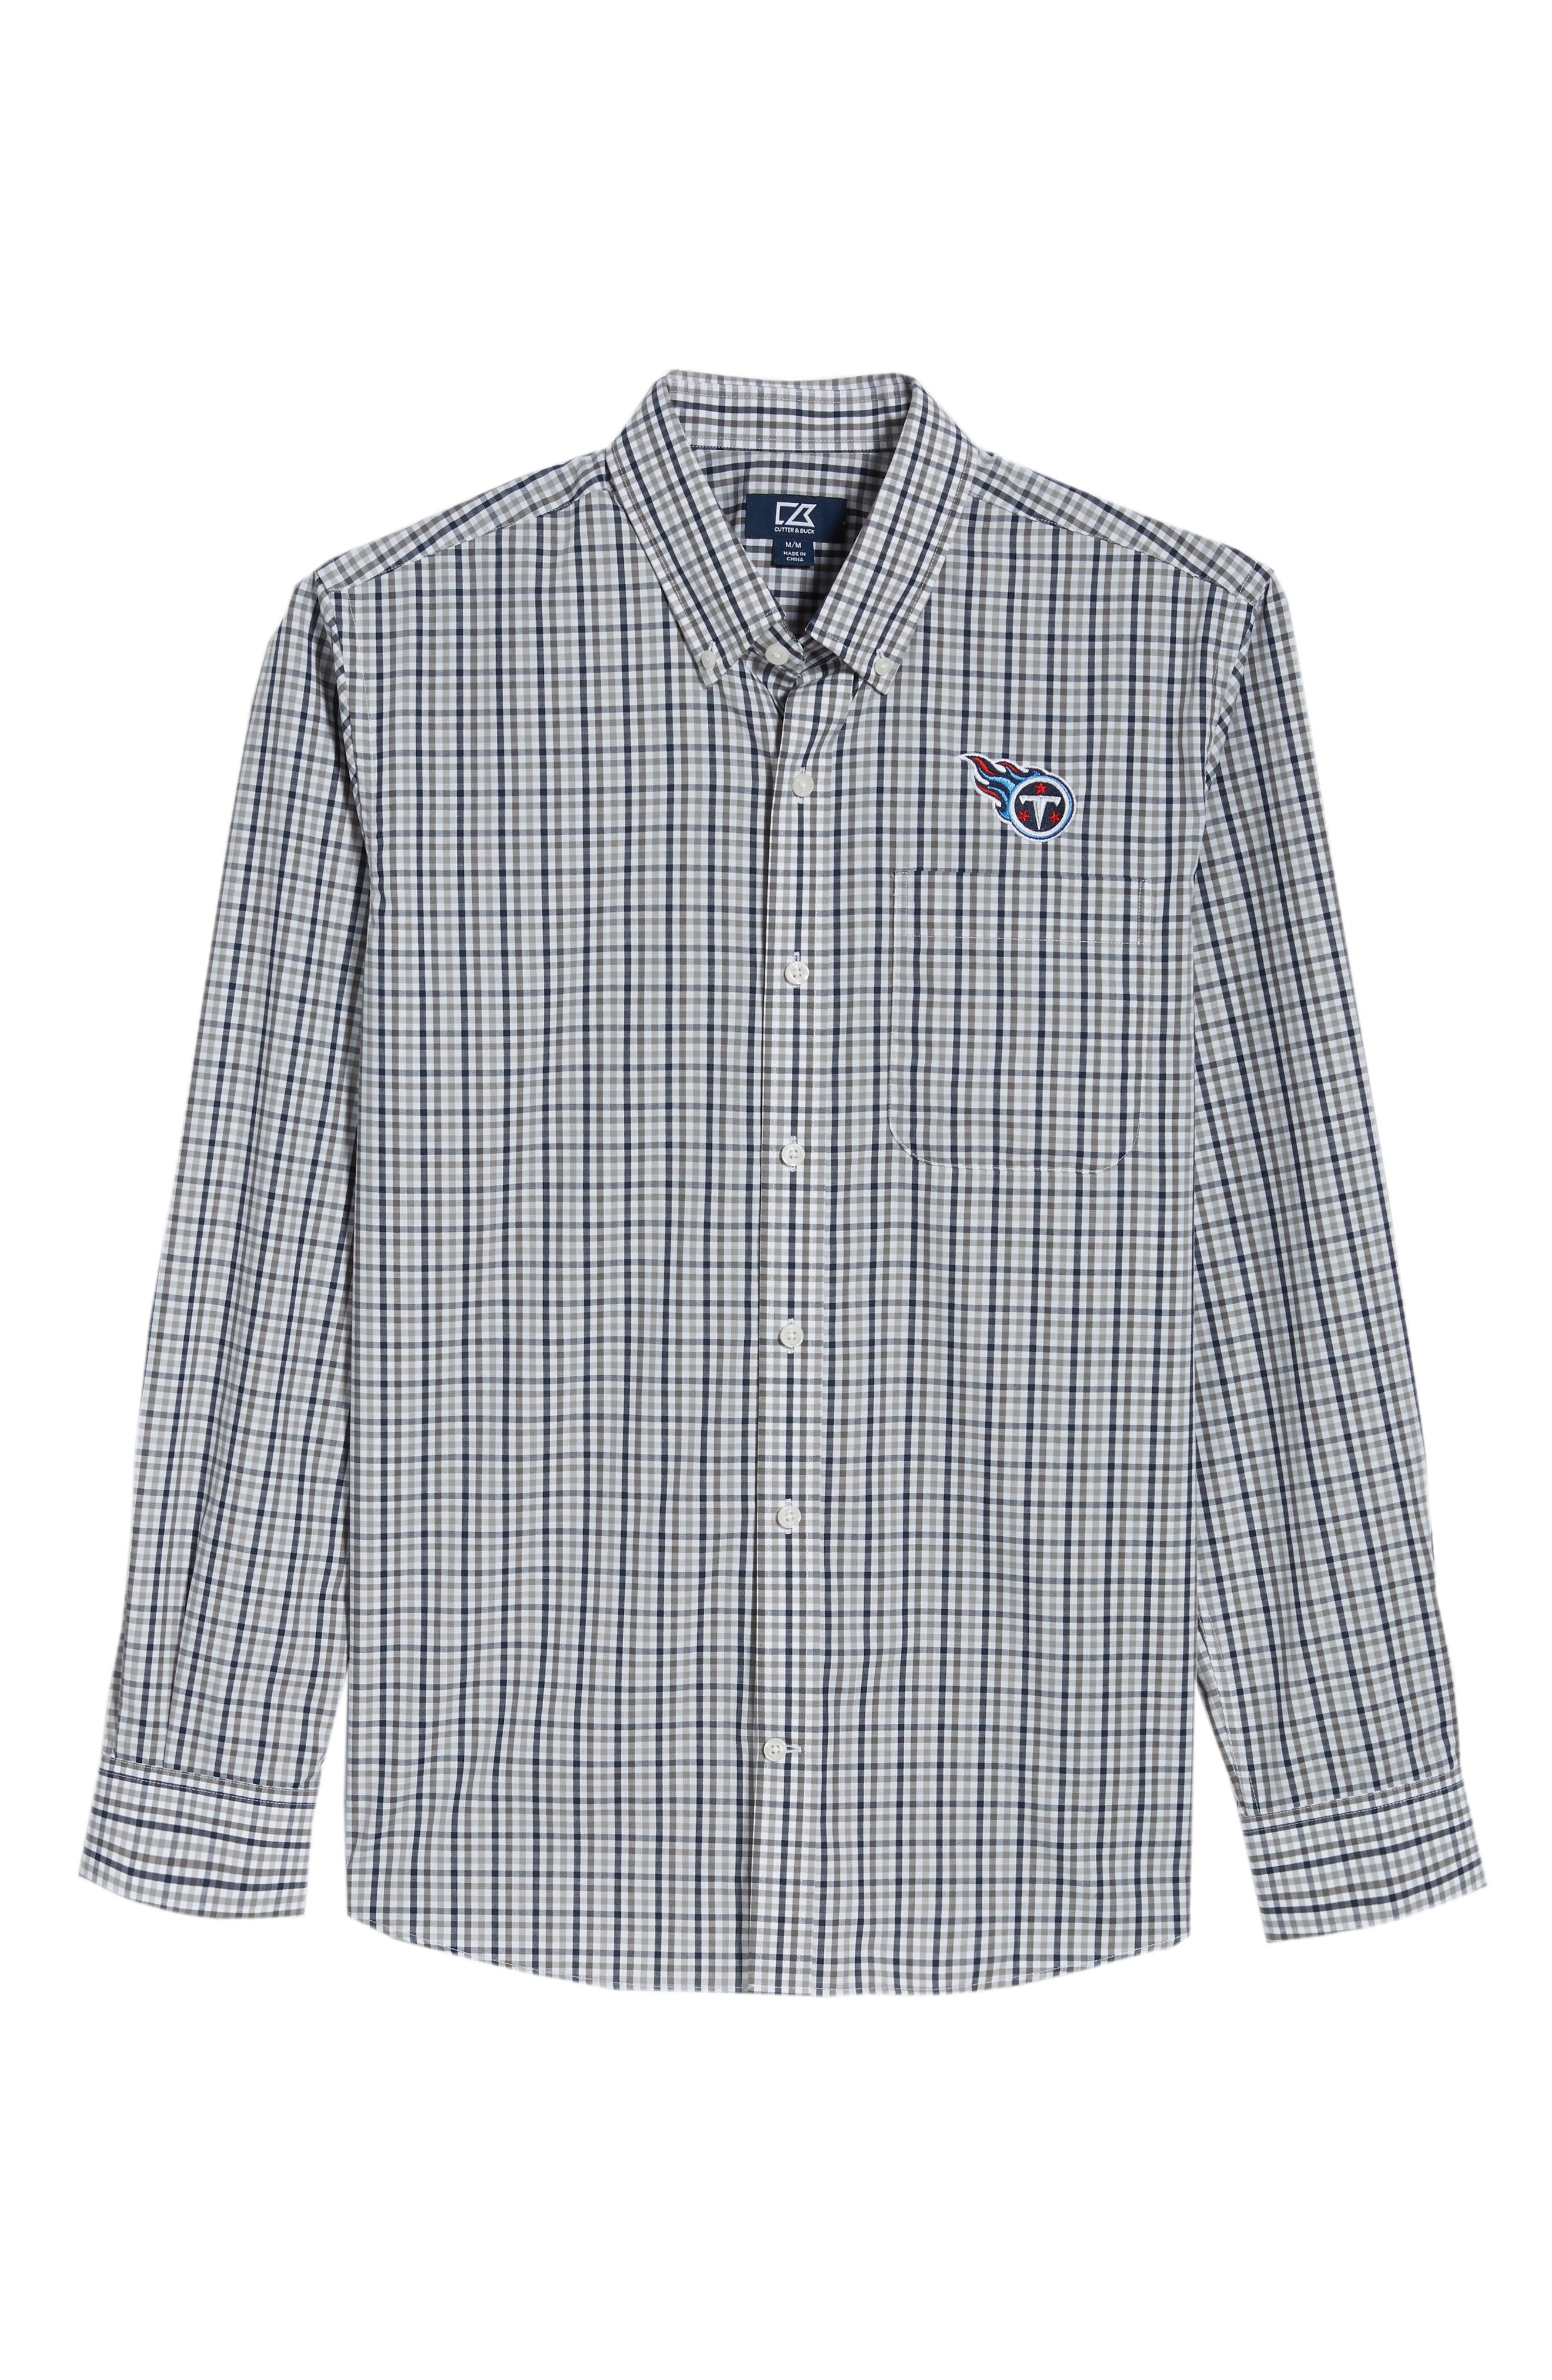 Tennessee Titans - Gilman Regular Fit Plaid Sport Shirt,                             Alternate thumbnail 6, color,                             LIBERTY NAVY